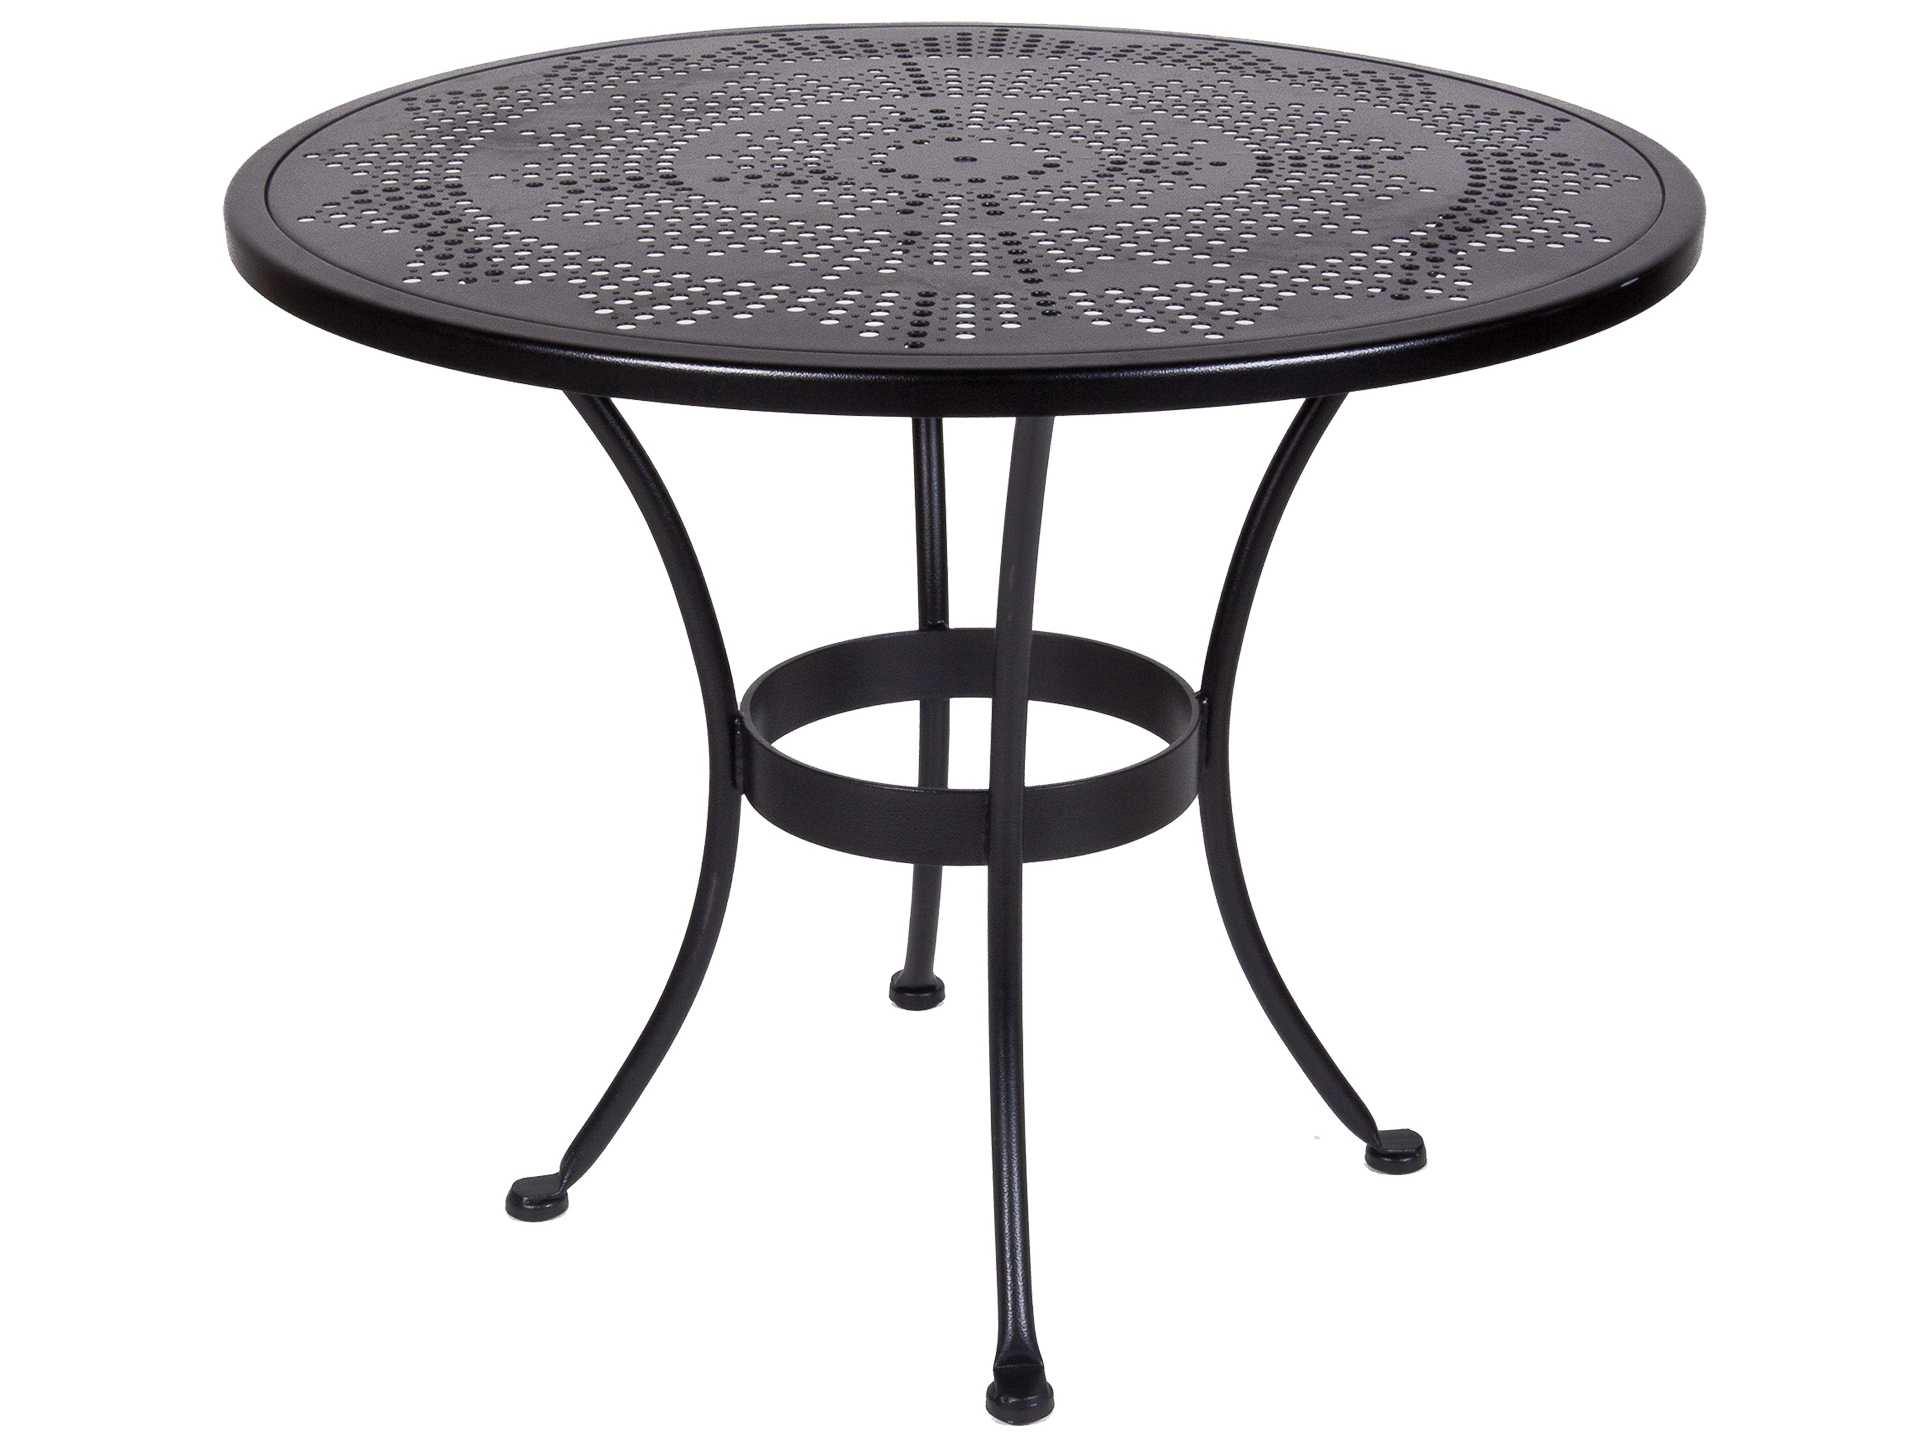 OW Lee Bistro Wrought Iron Stamped 36 Round Table With Umbrella Hole List  Price 743.00 FREE SHIPPING $631.55